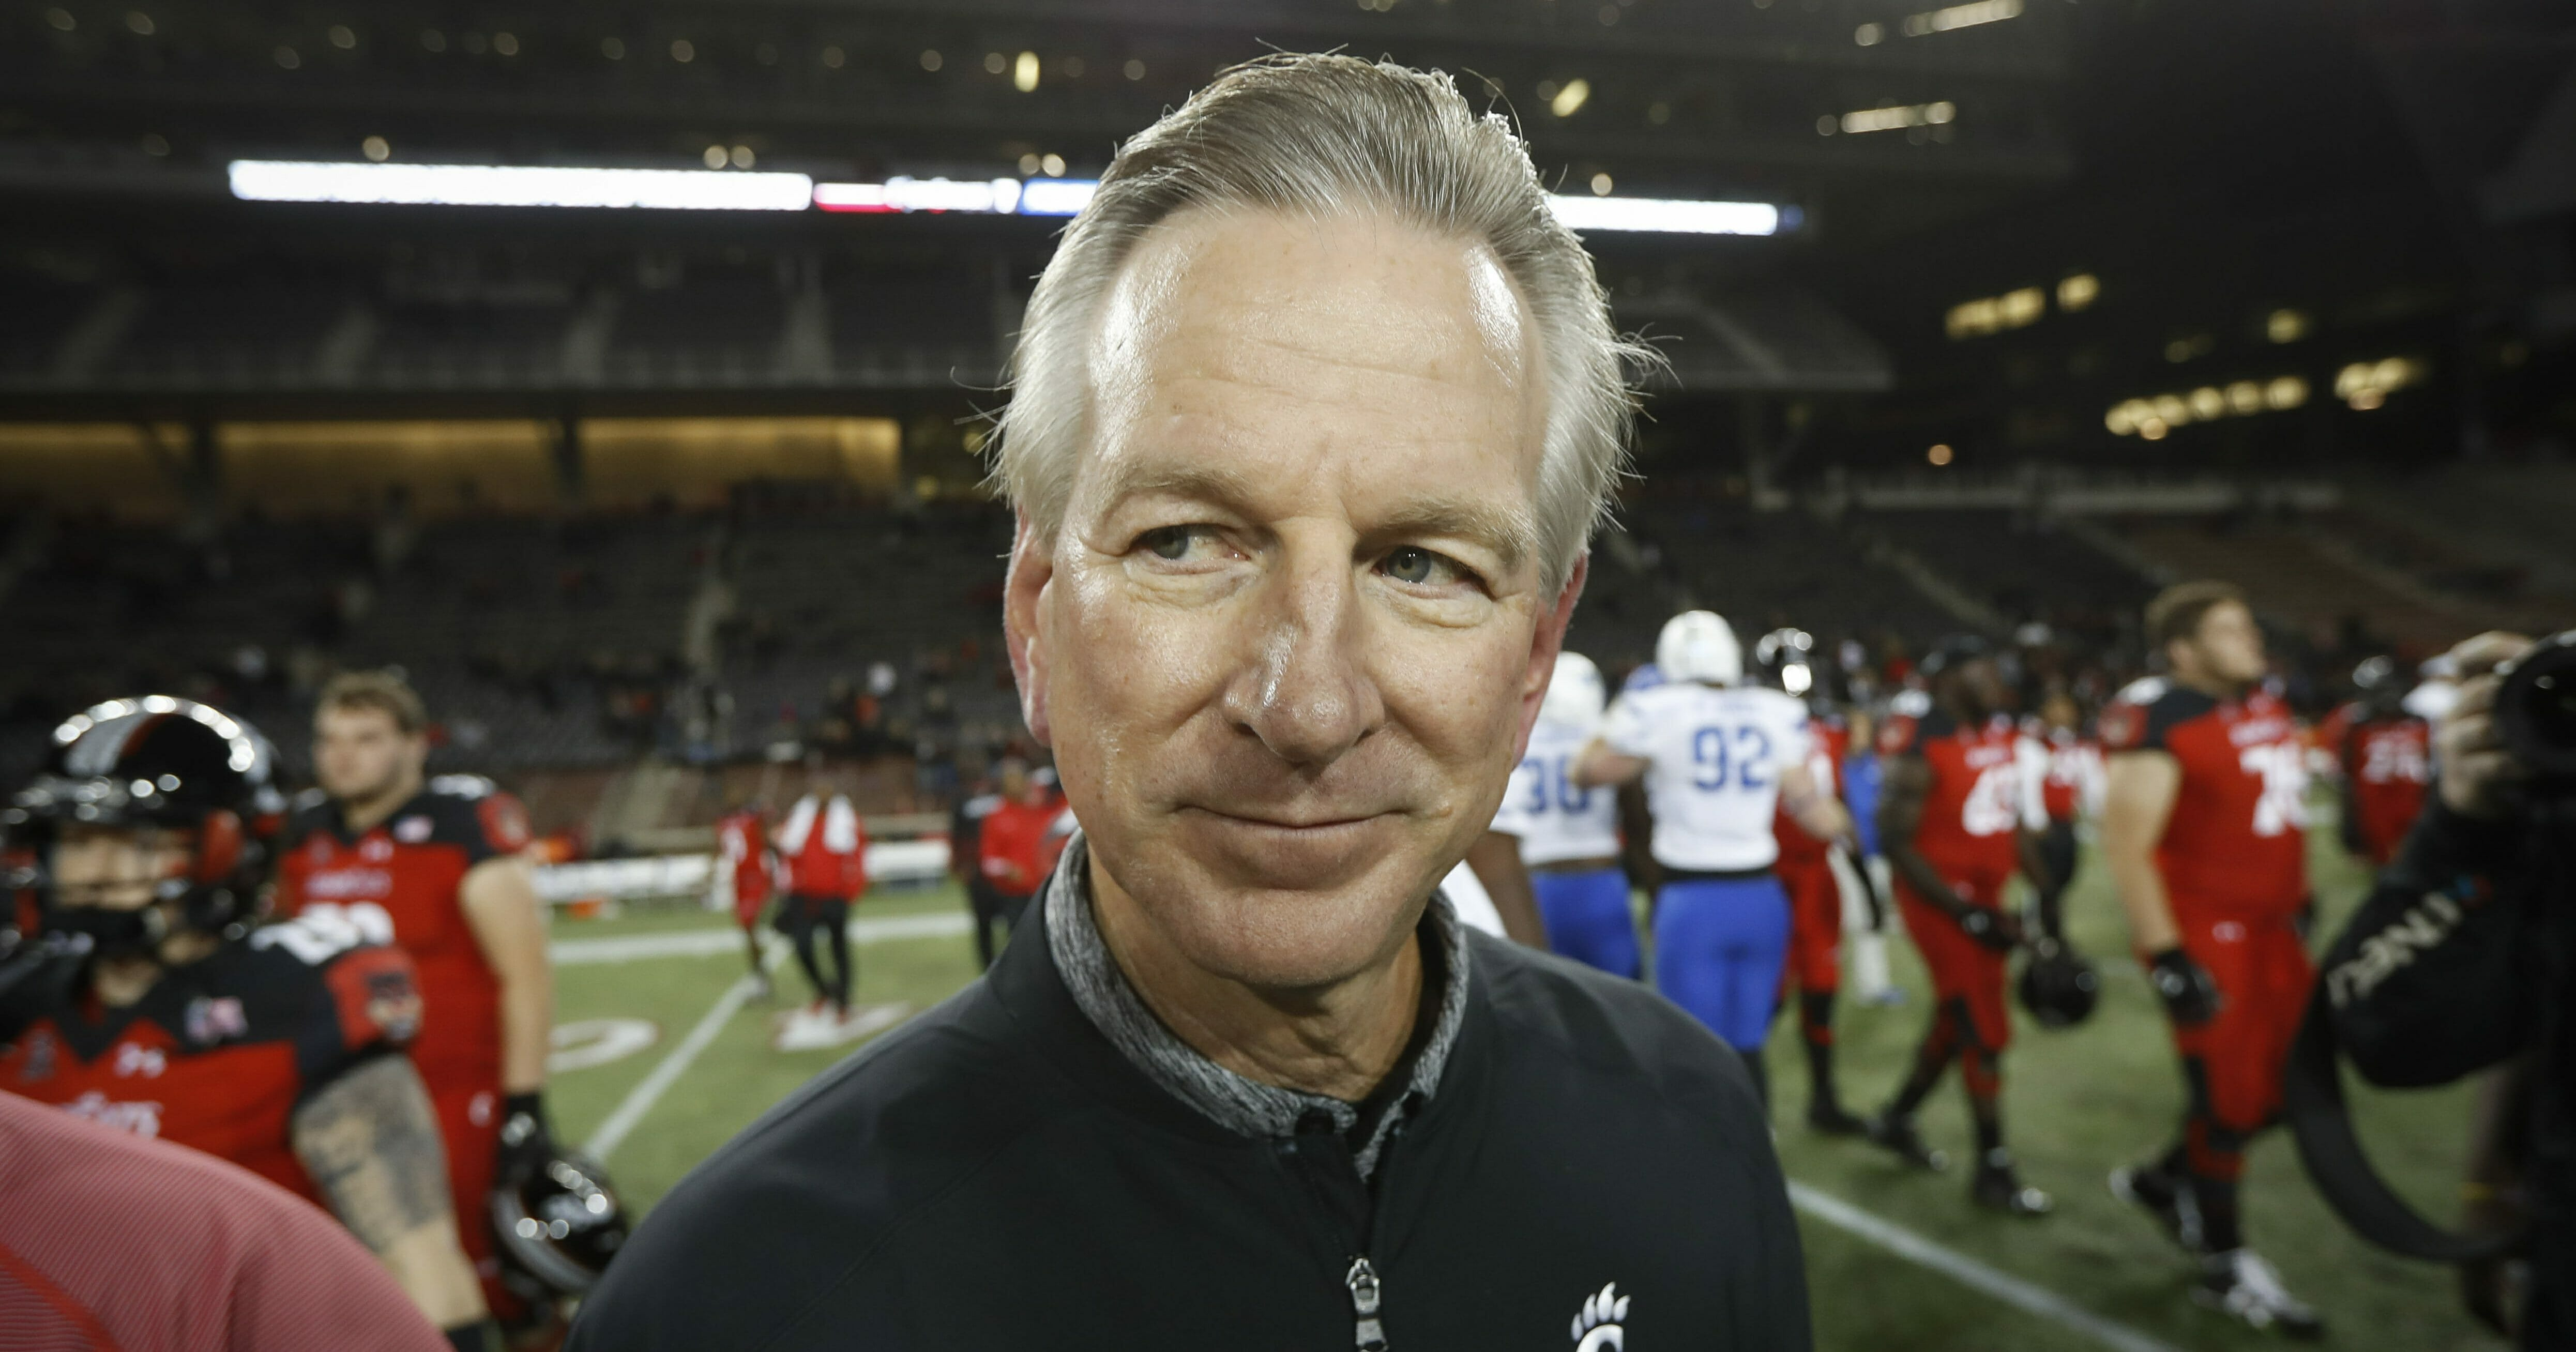 In this Nov. 18, 2016 file photo, Cincinnati coach Tommy Tuberville walks off the field after the team's NCAA college football game against Memphis in Cincinnati.